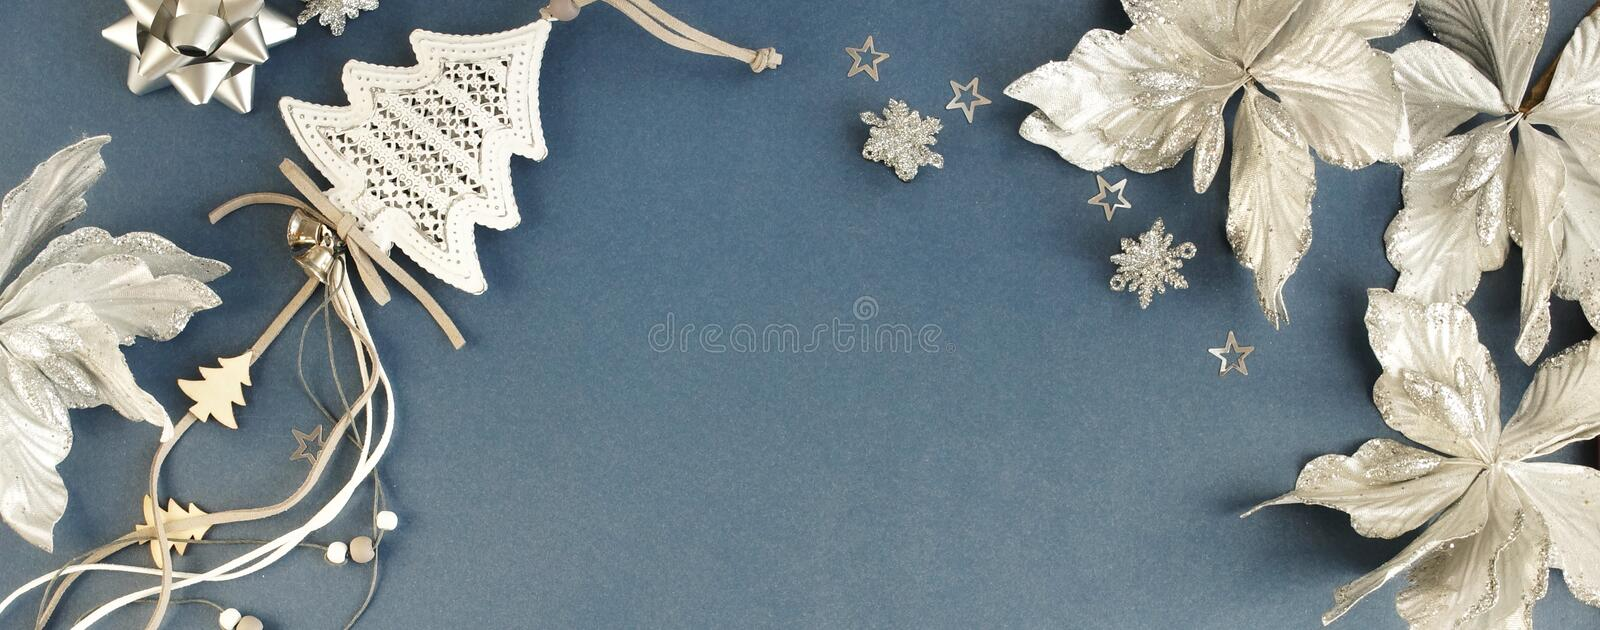 Christmas background banner. Xmas or new year white silver color decorations on blue gray  background with empty copy space for te royalty free stock image